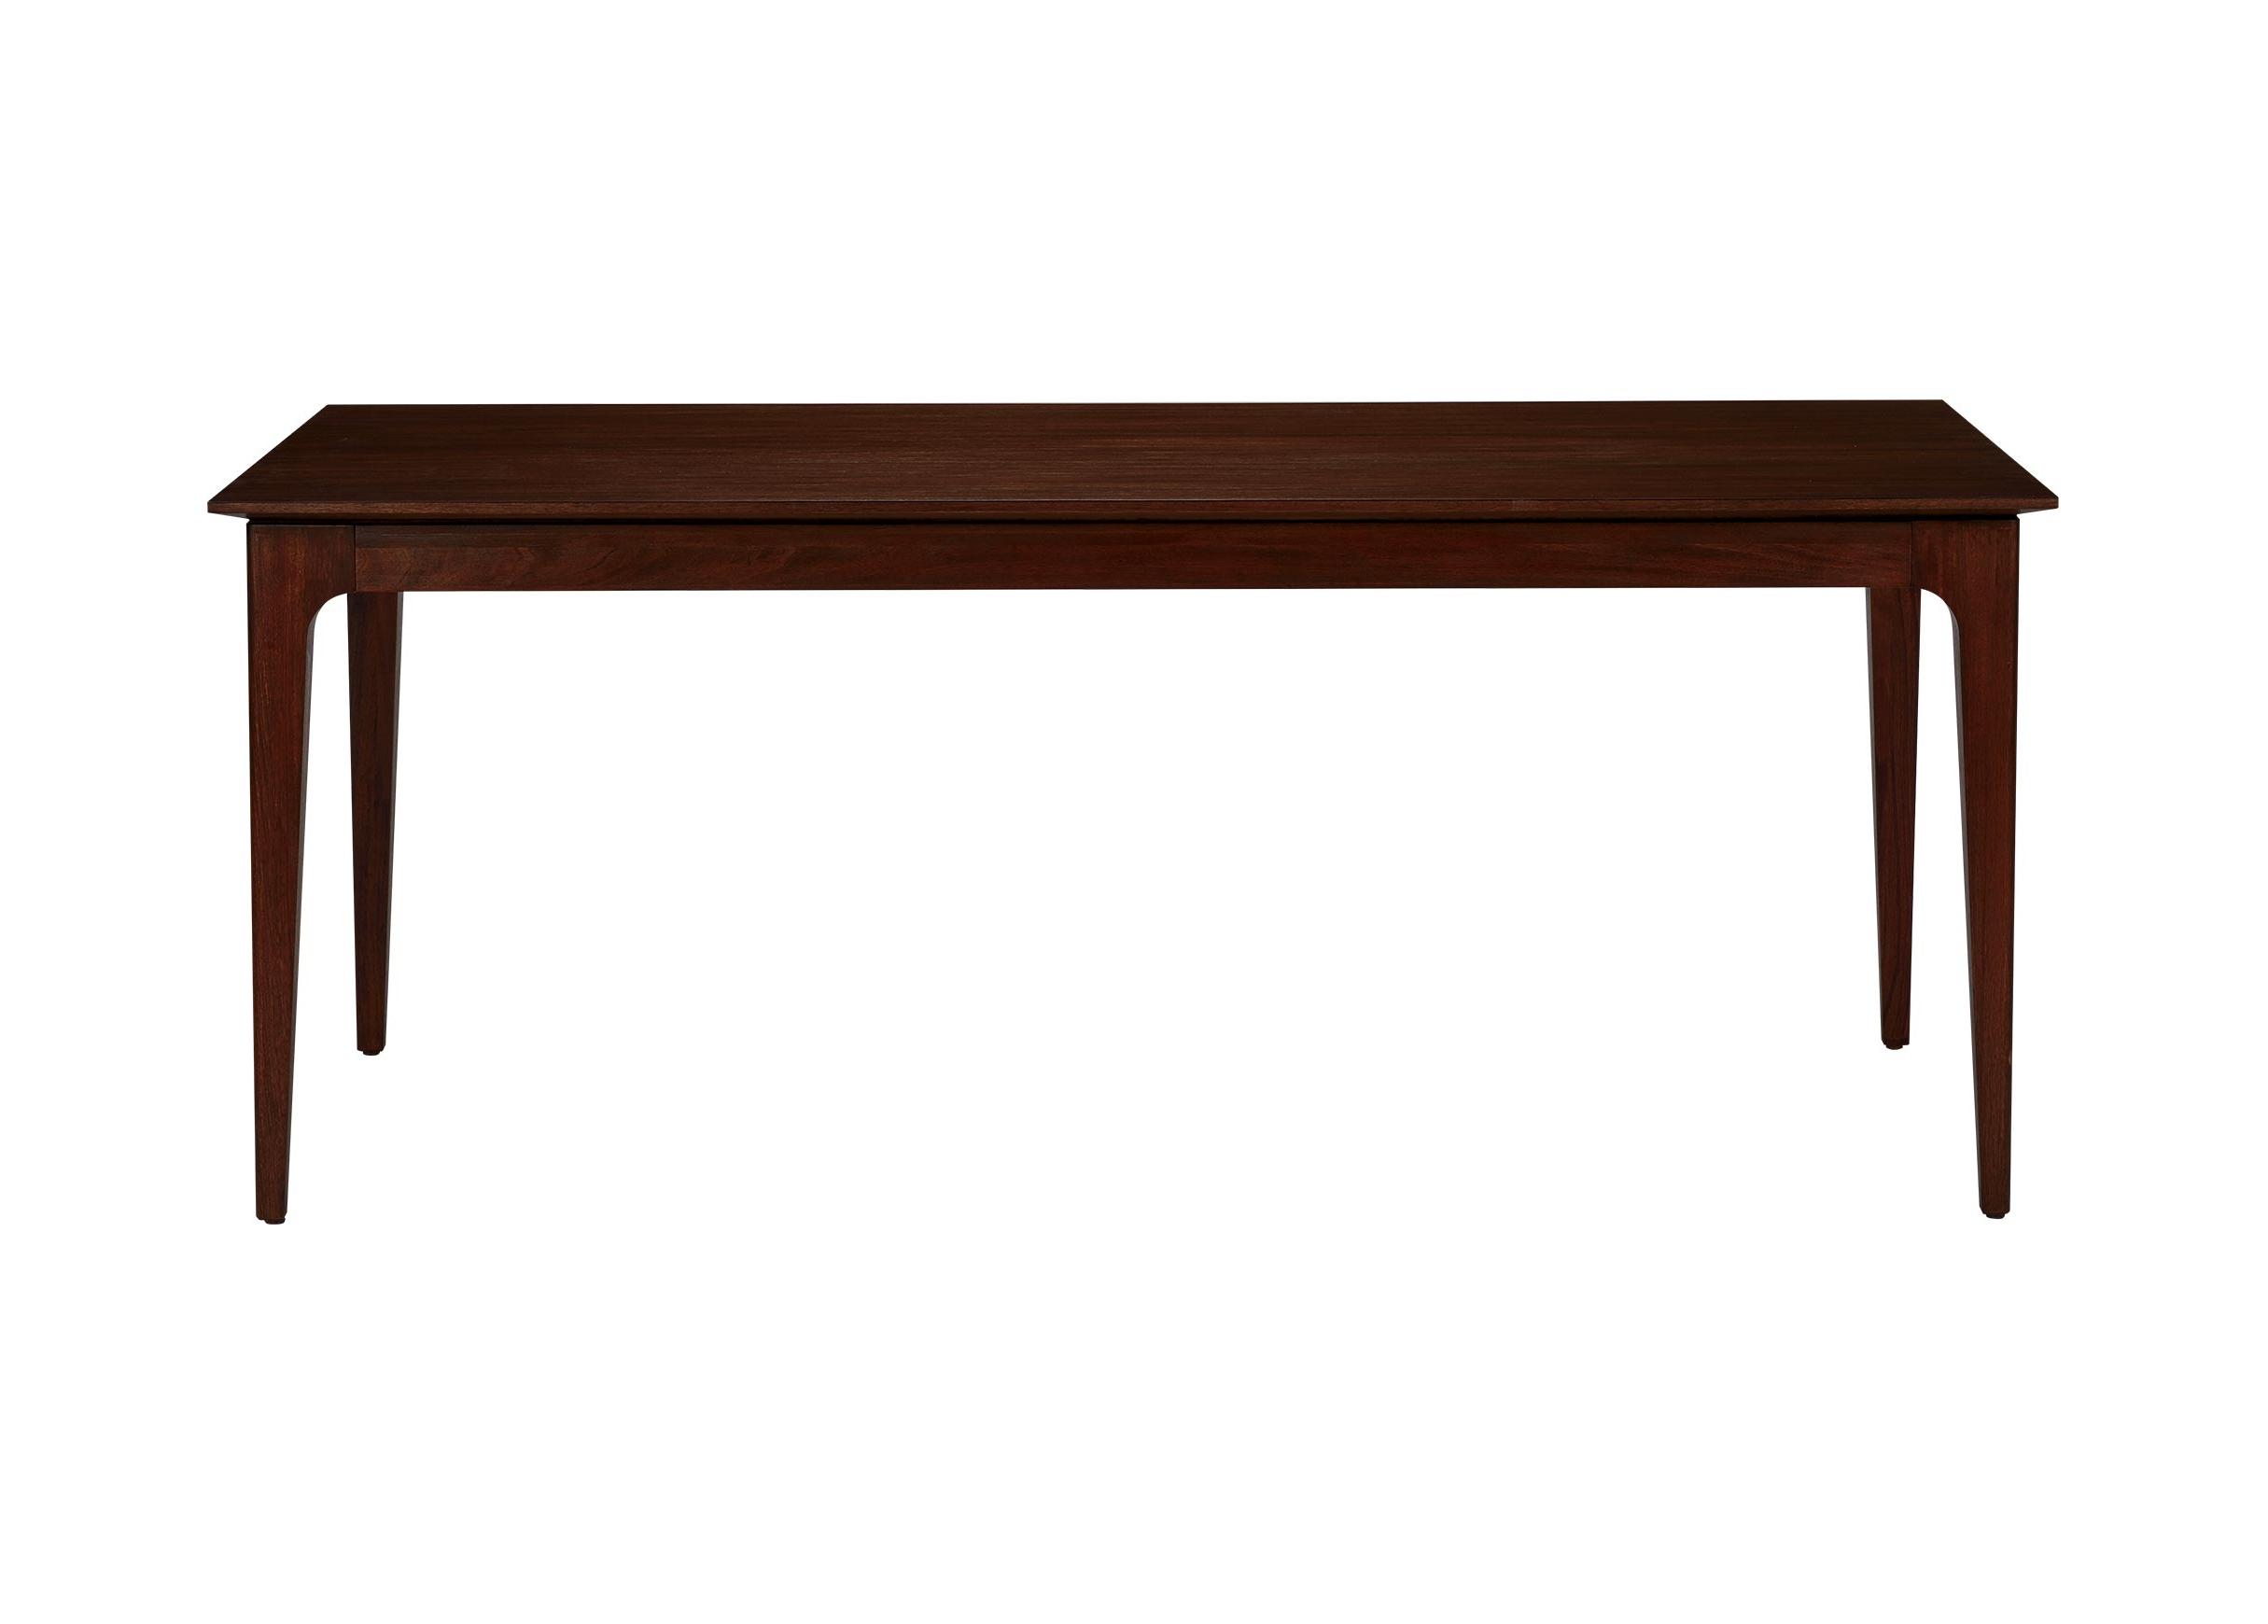 Ethan Allen Dining Within Transitional Rectangular Dining Tables (View 5 of 30)